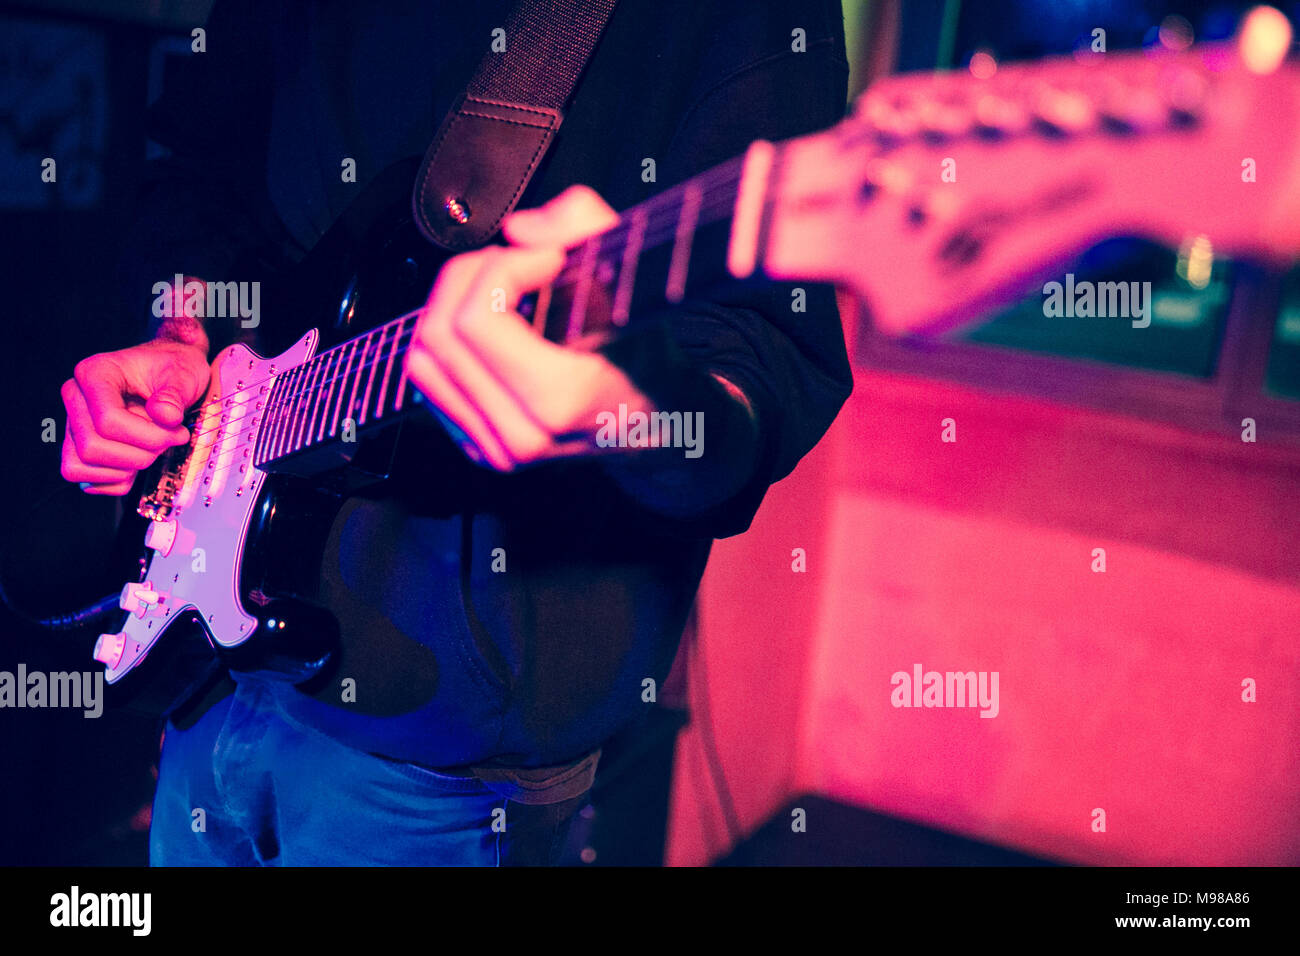 detail of the electric guitar of the Pistoia singer-songwriter Lorenzo Maffucci during his live at the Arci Camalli in Imperia on January 28, 2018 - Stock Image